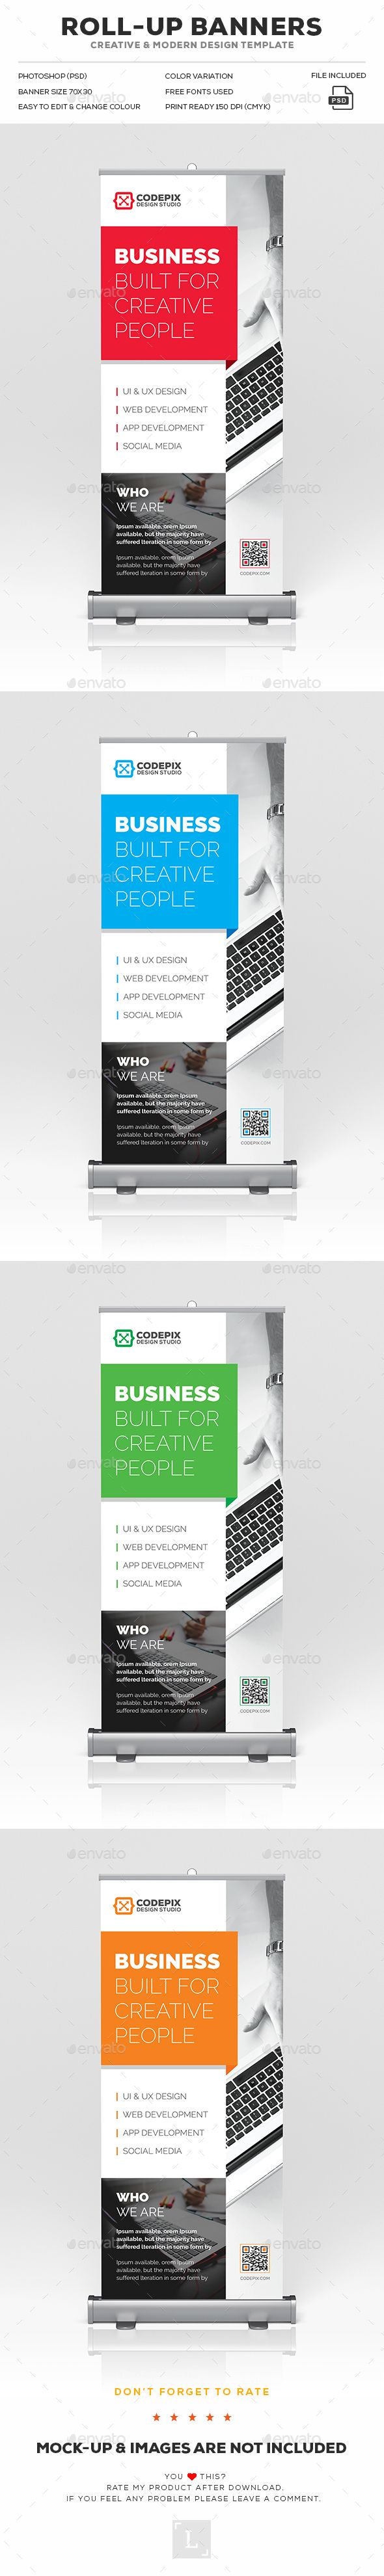 Roll-Up Banner Template PSD. Download here: https://graphicriver.net/item/rollup-banner/17552490?ref=ksioks